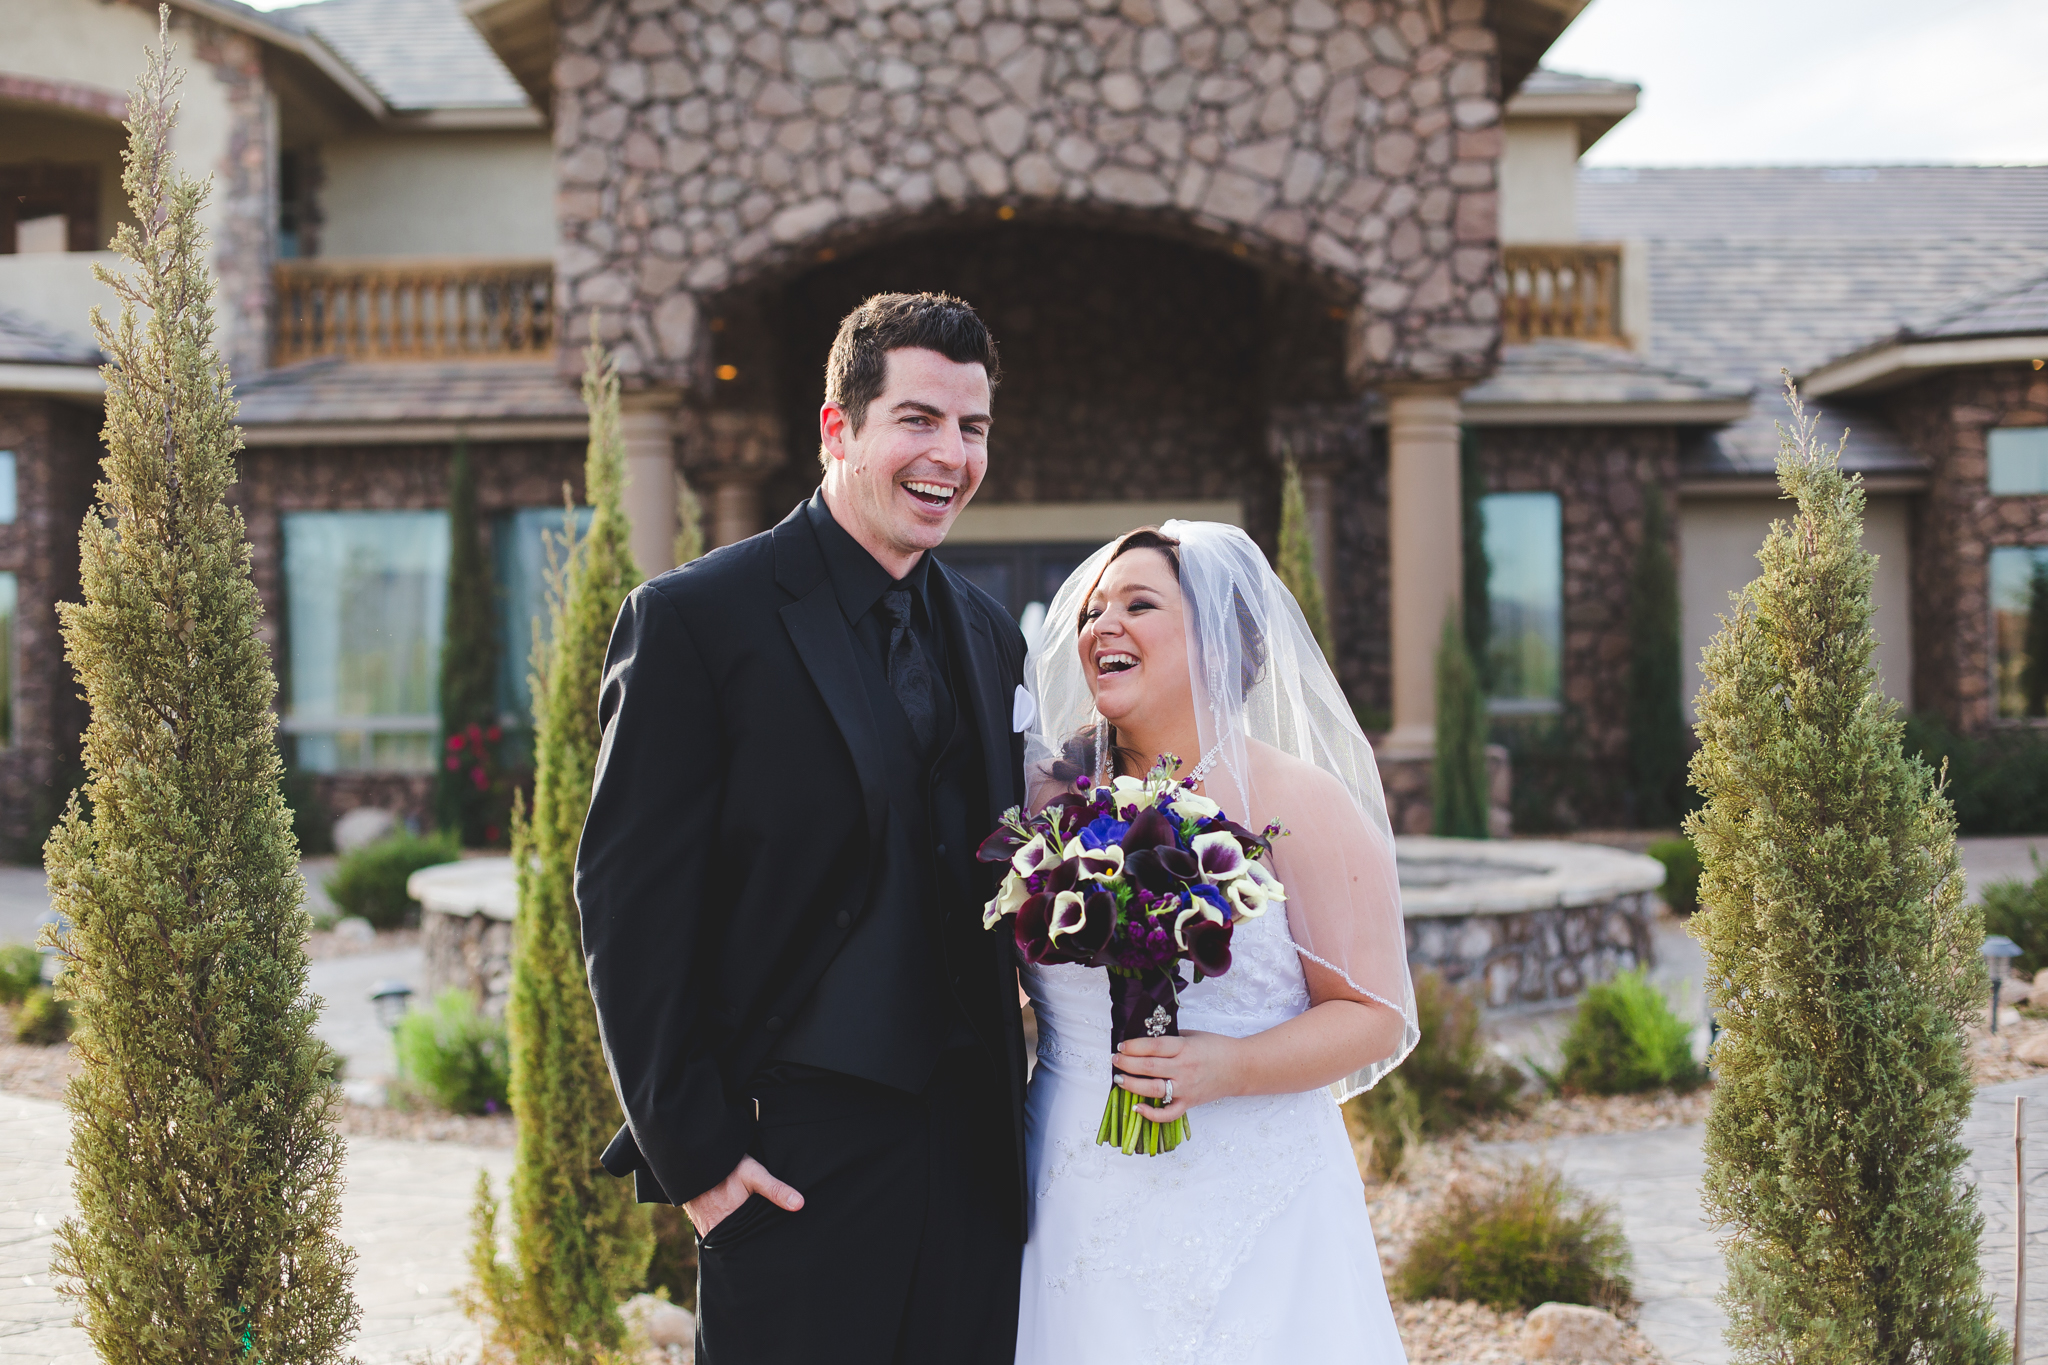 bride and groom portrait superstition manor trees smiling aaron kes photography mj